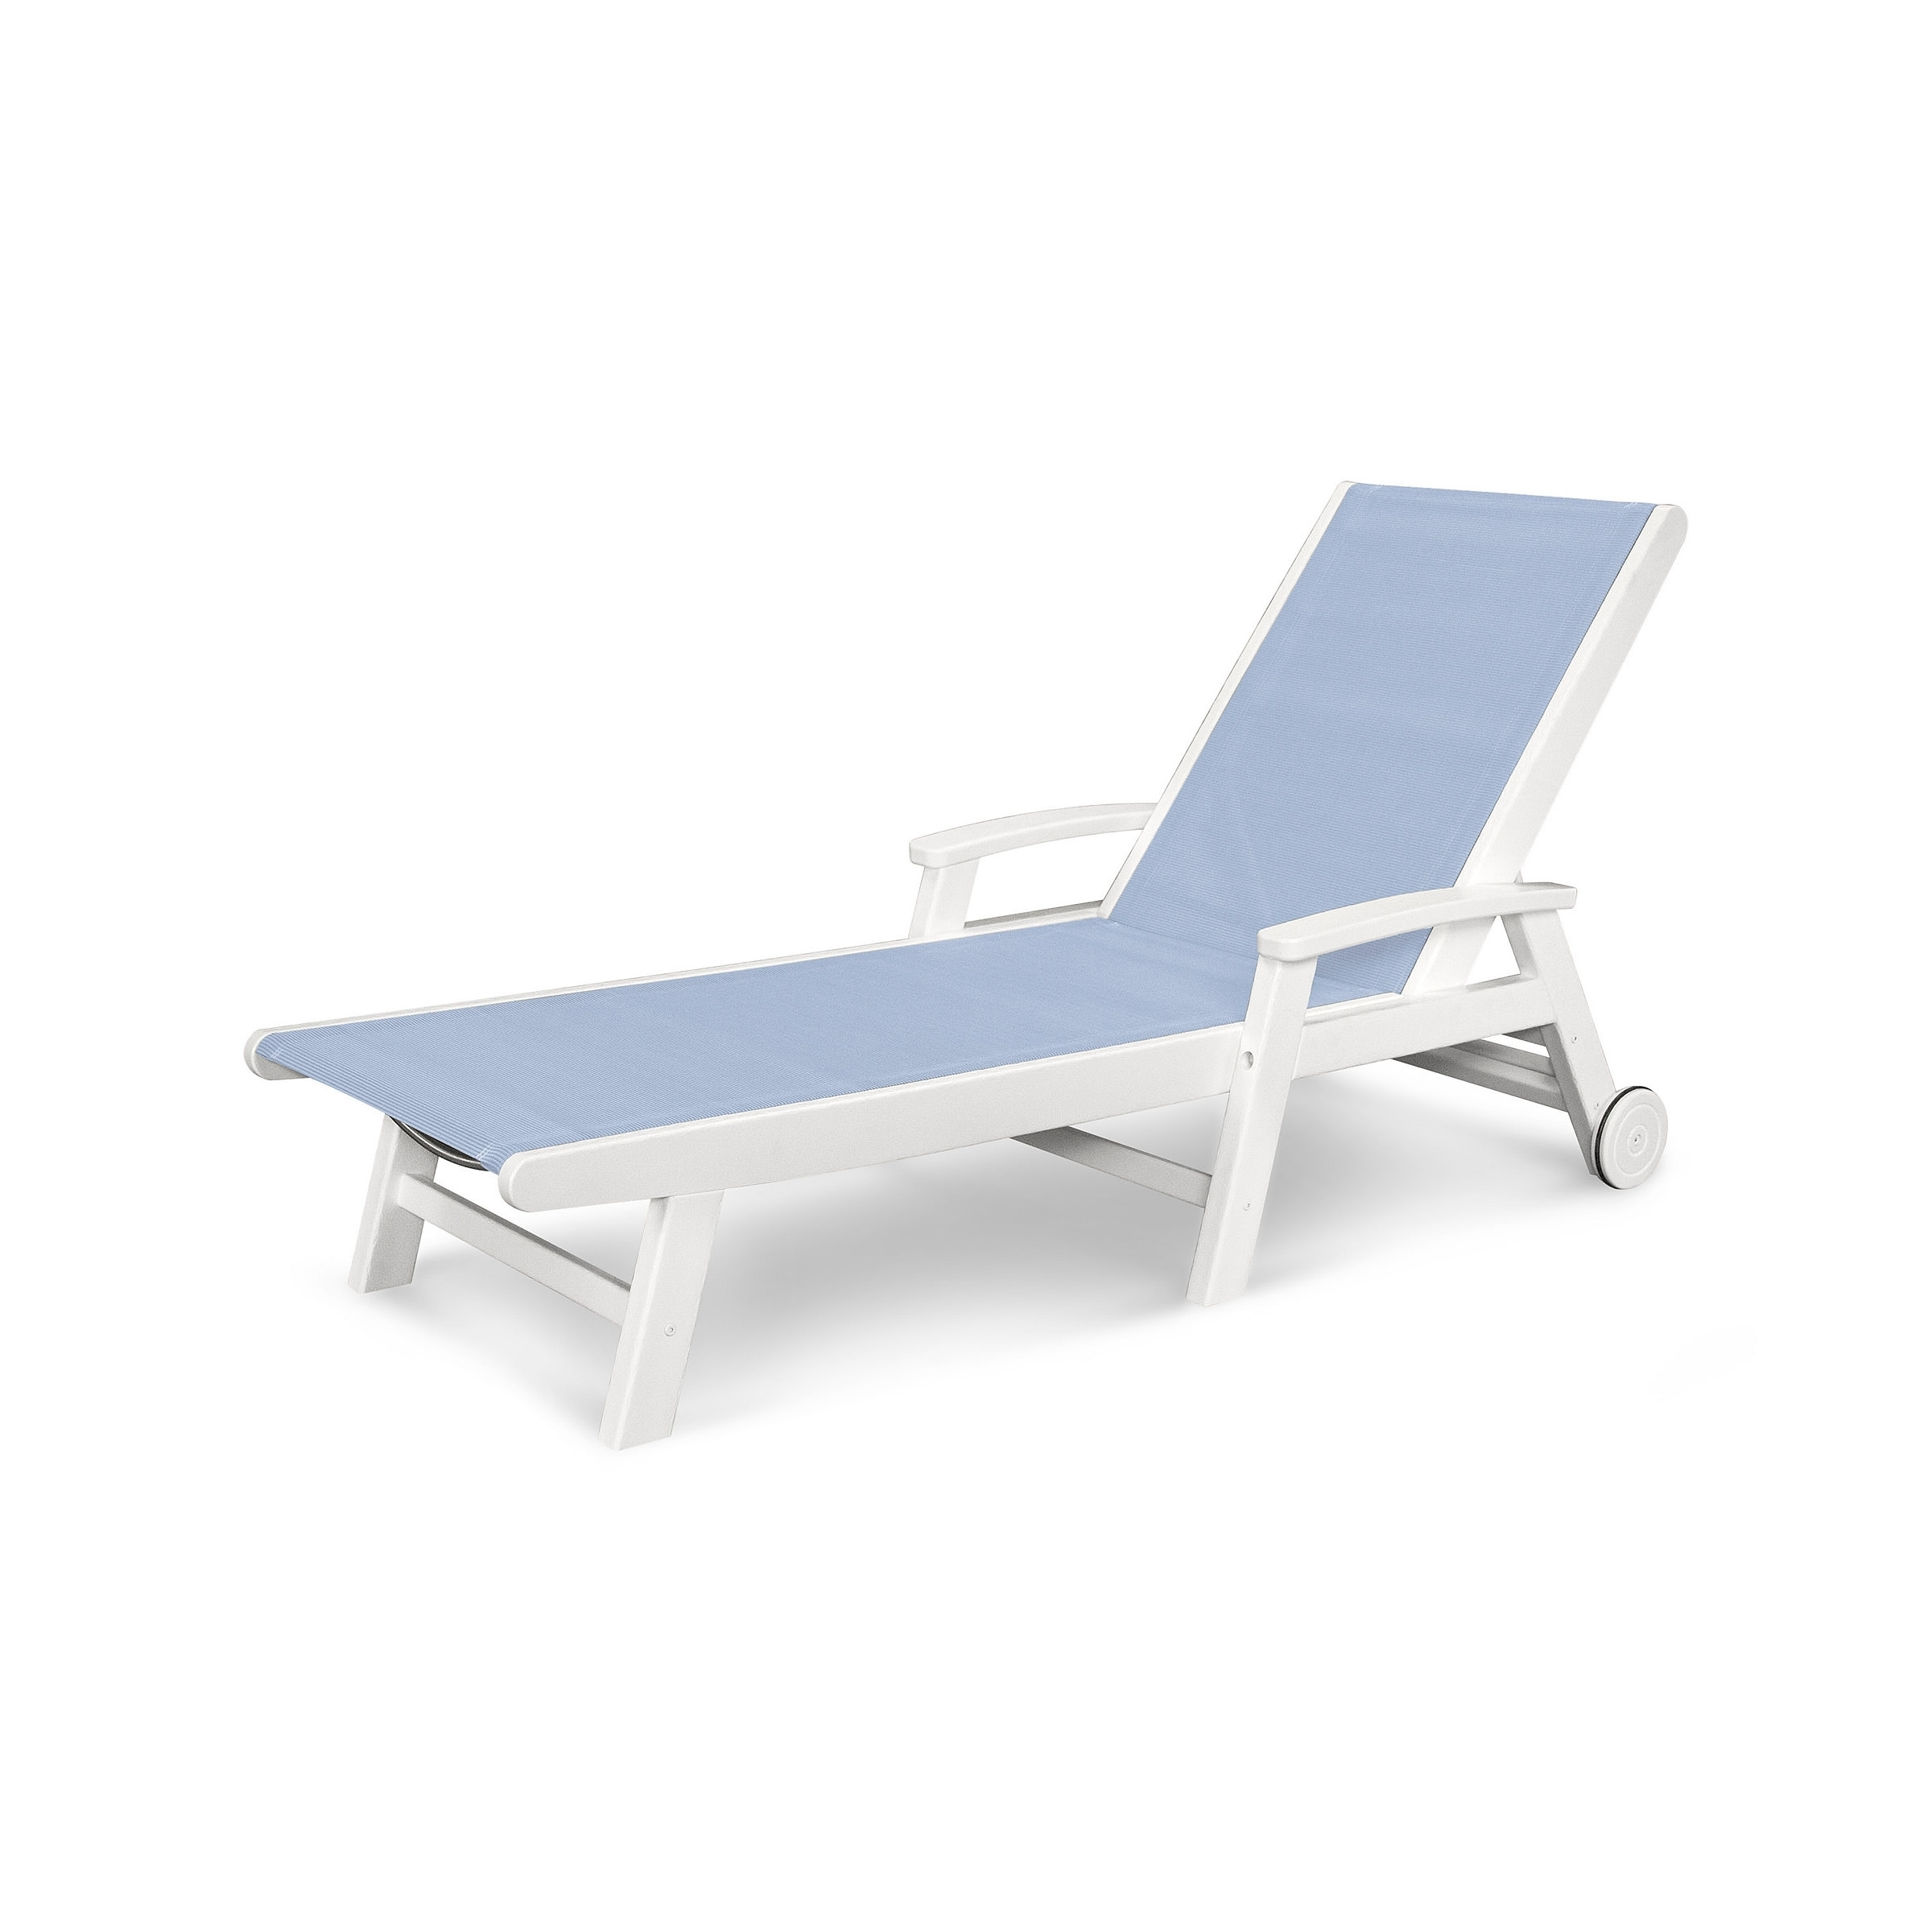 White Outdoor Chaise Lounges Intended For Most Current Polywood Furniture (View 9 of 15)